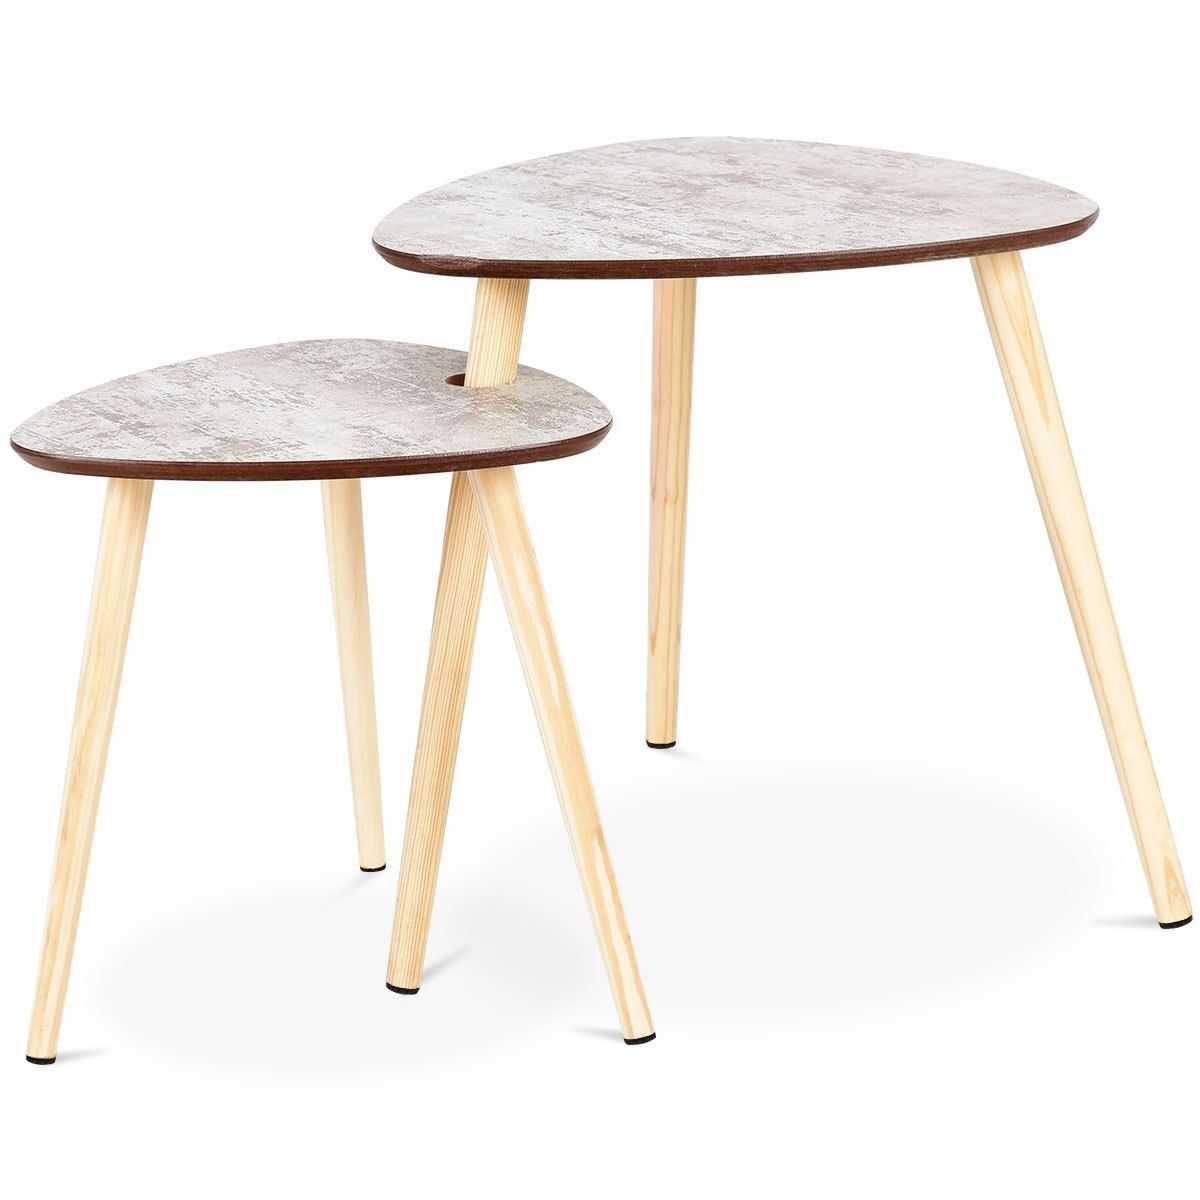 2 Pcs Living Room Nesting End Coffee Tables With Wooden Leg In